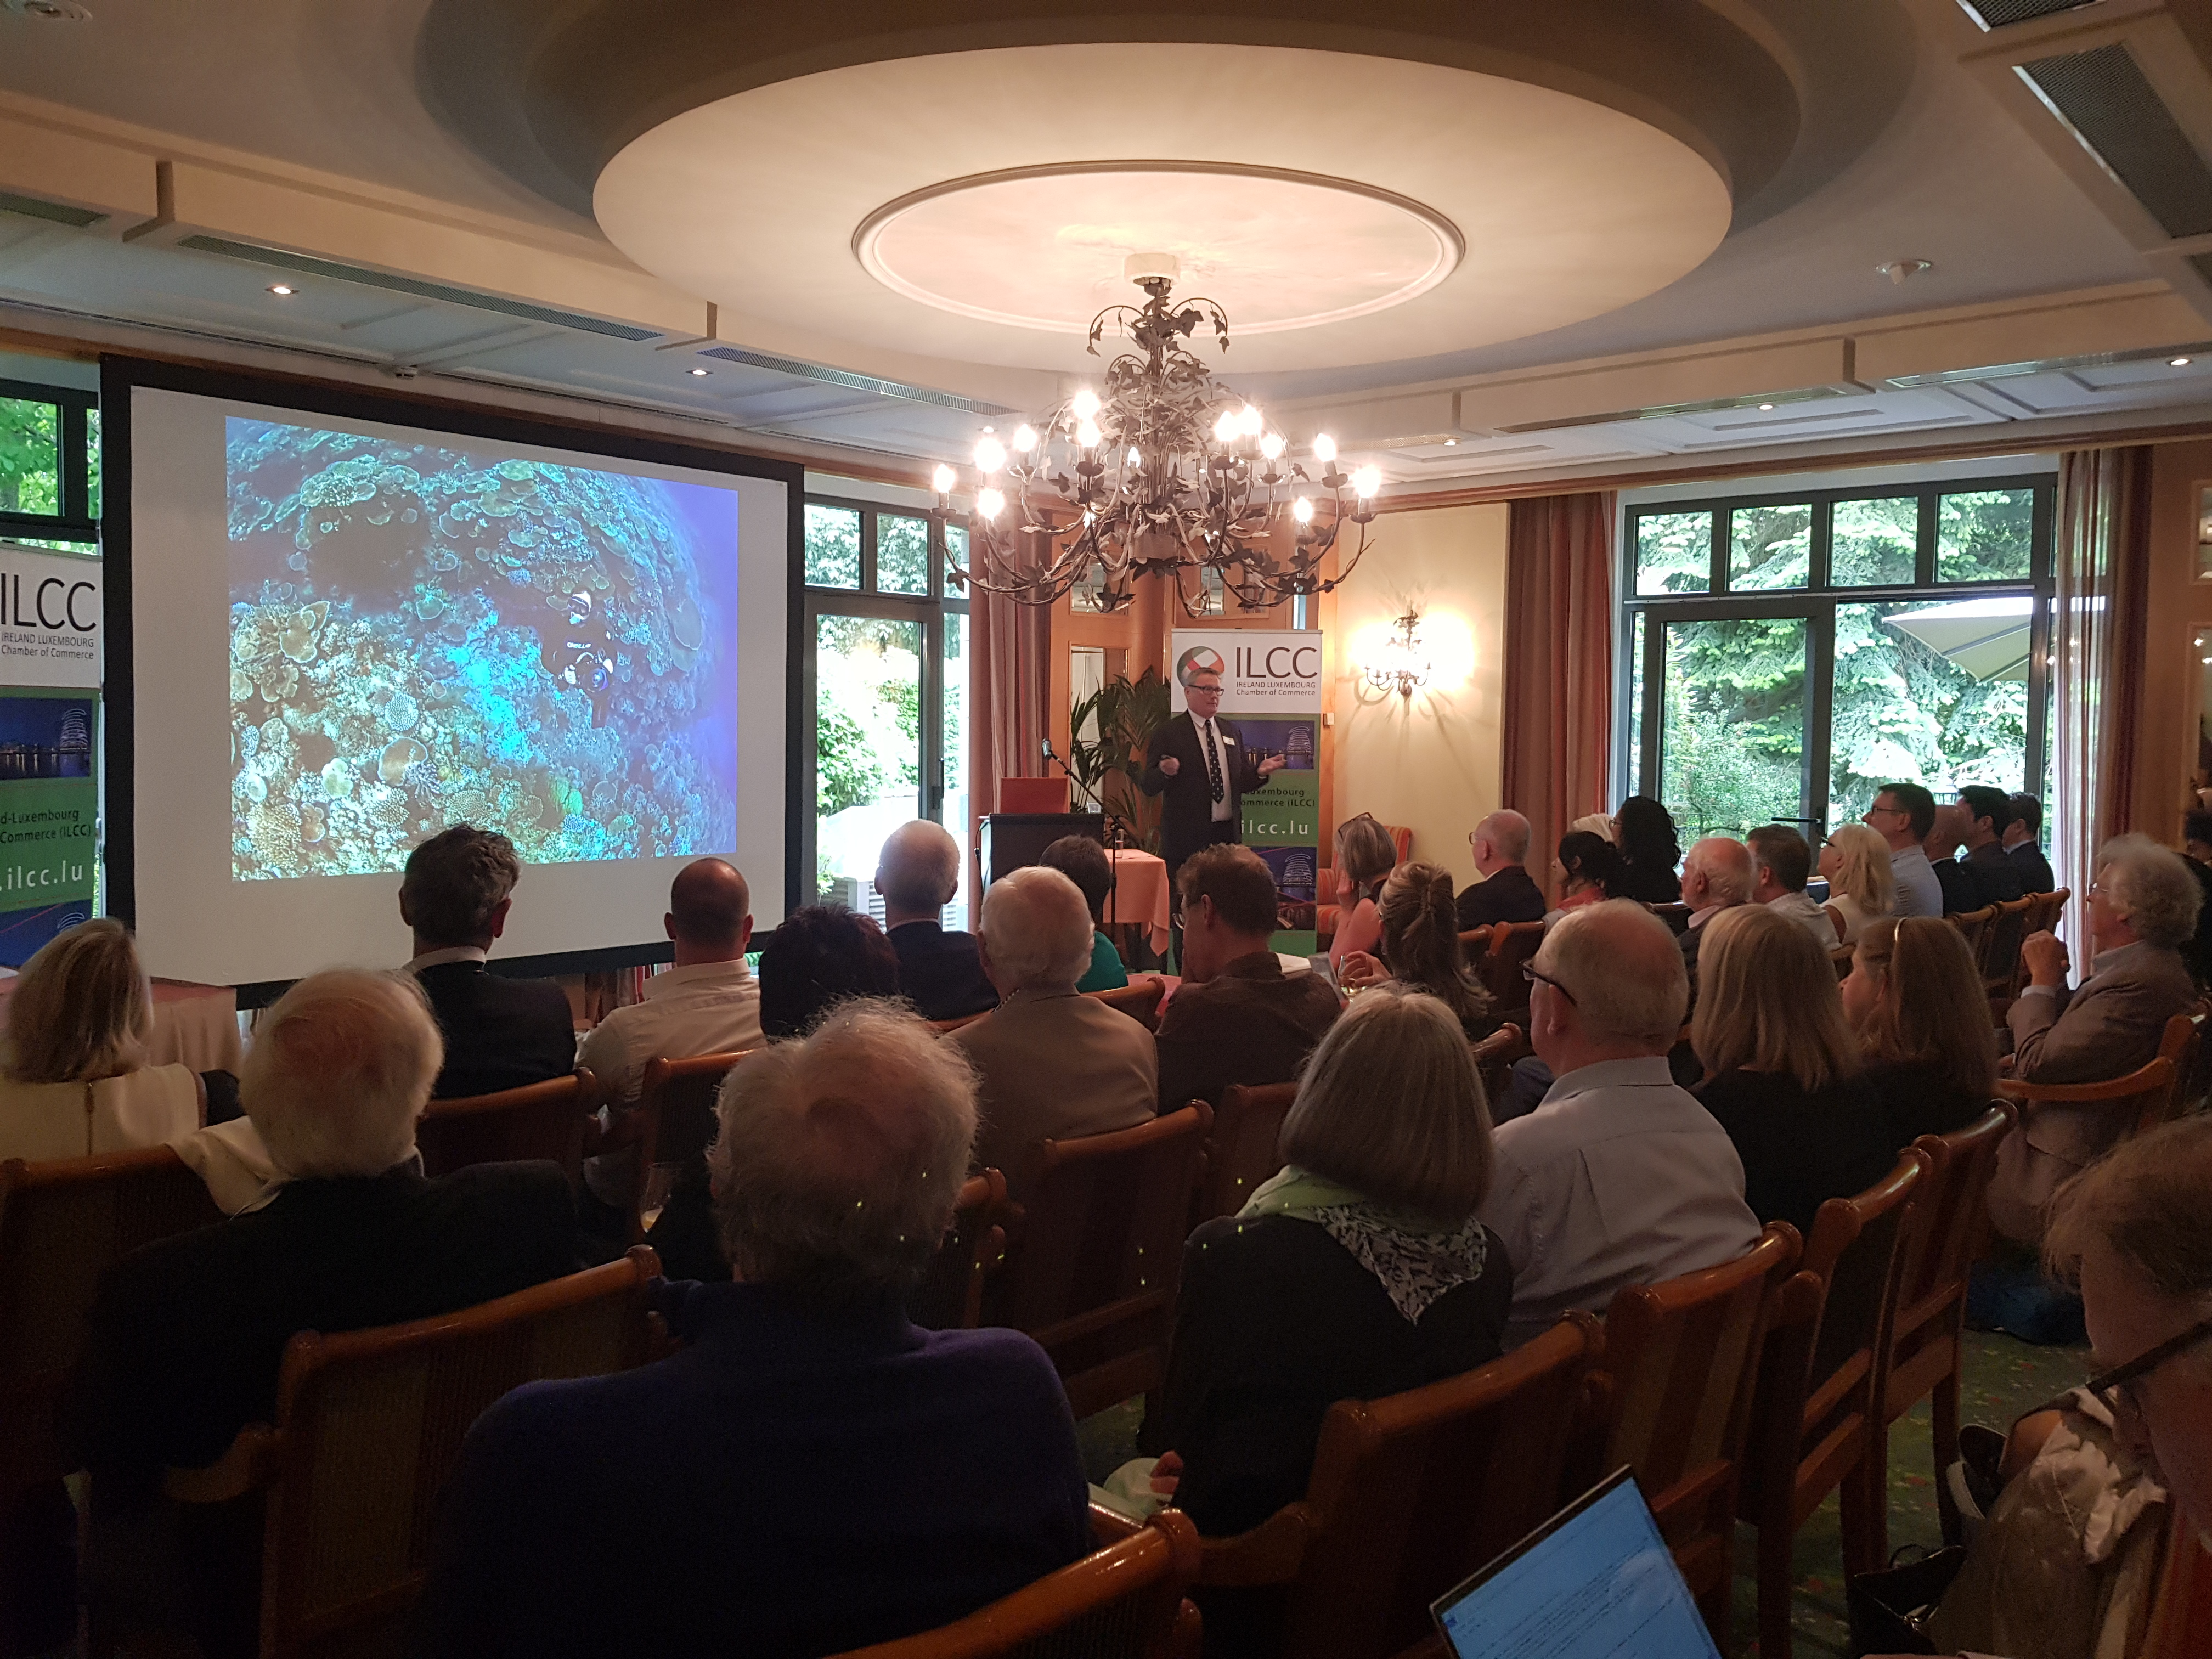 David Jones speaking to packed audience about plastic pollution